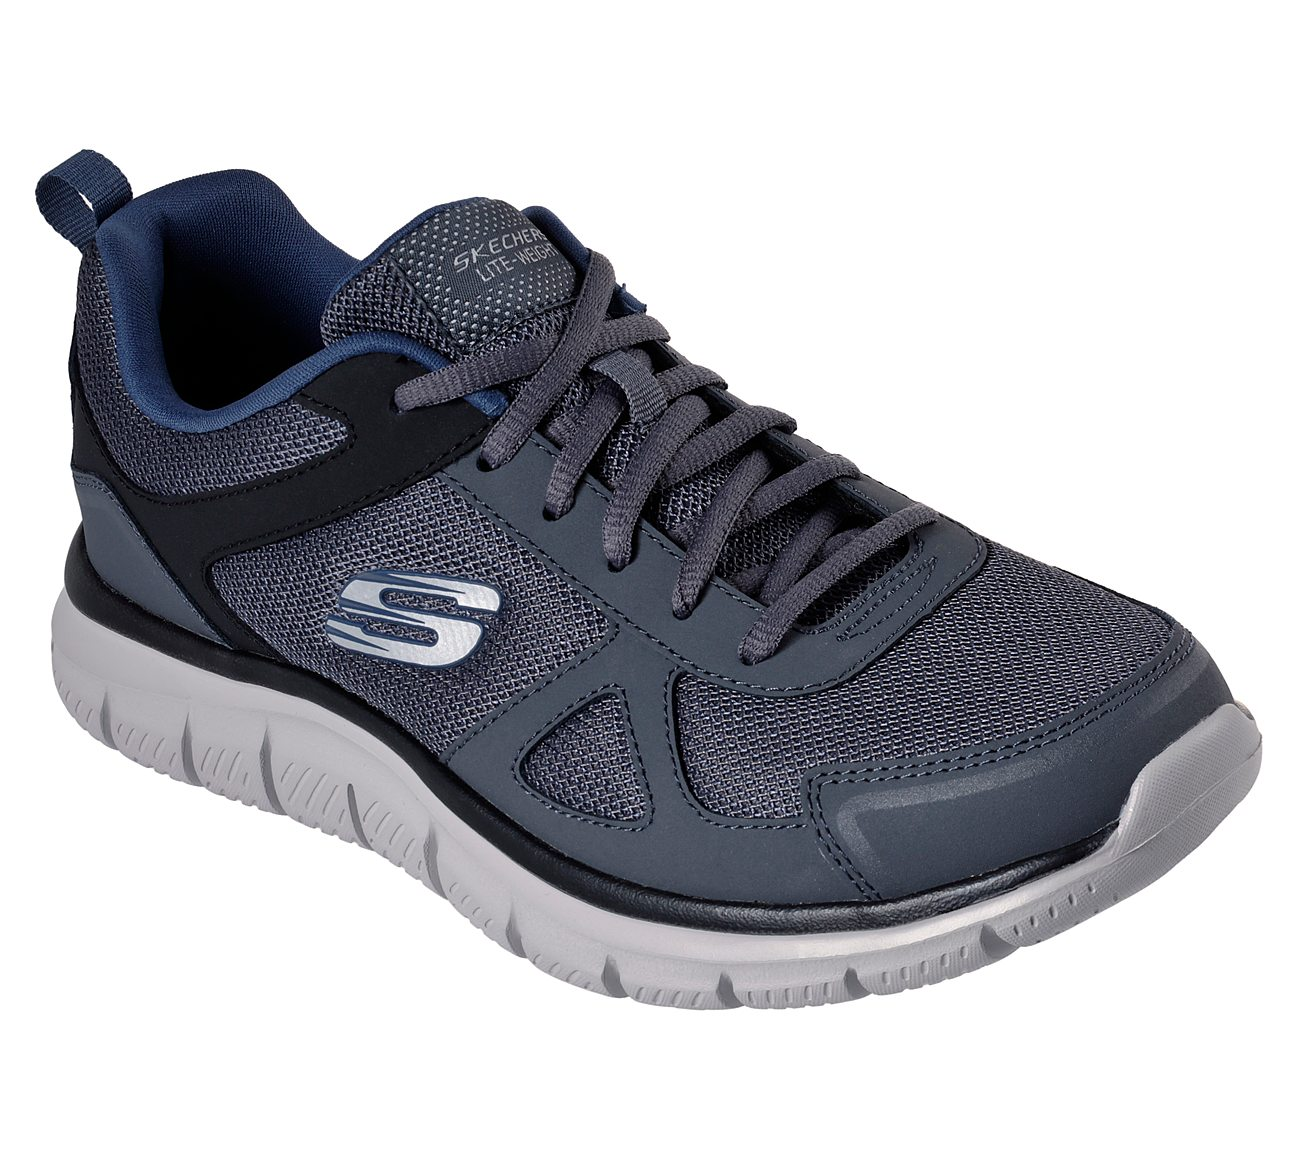 skechers shoes for men without less